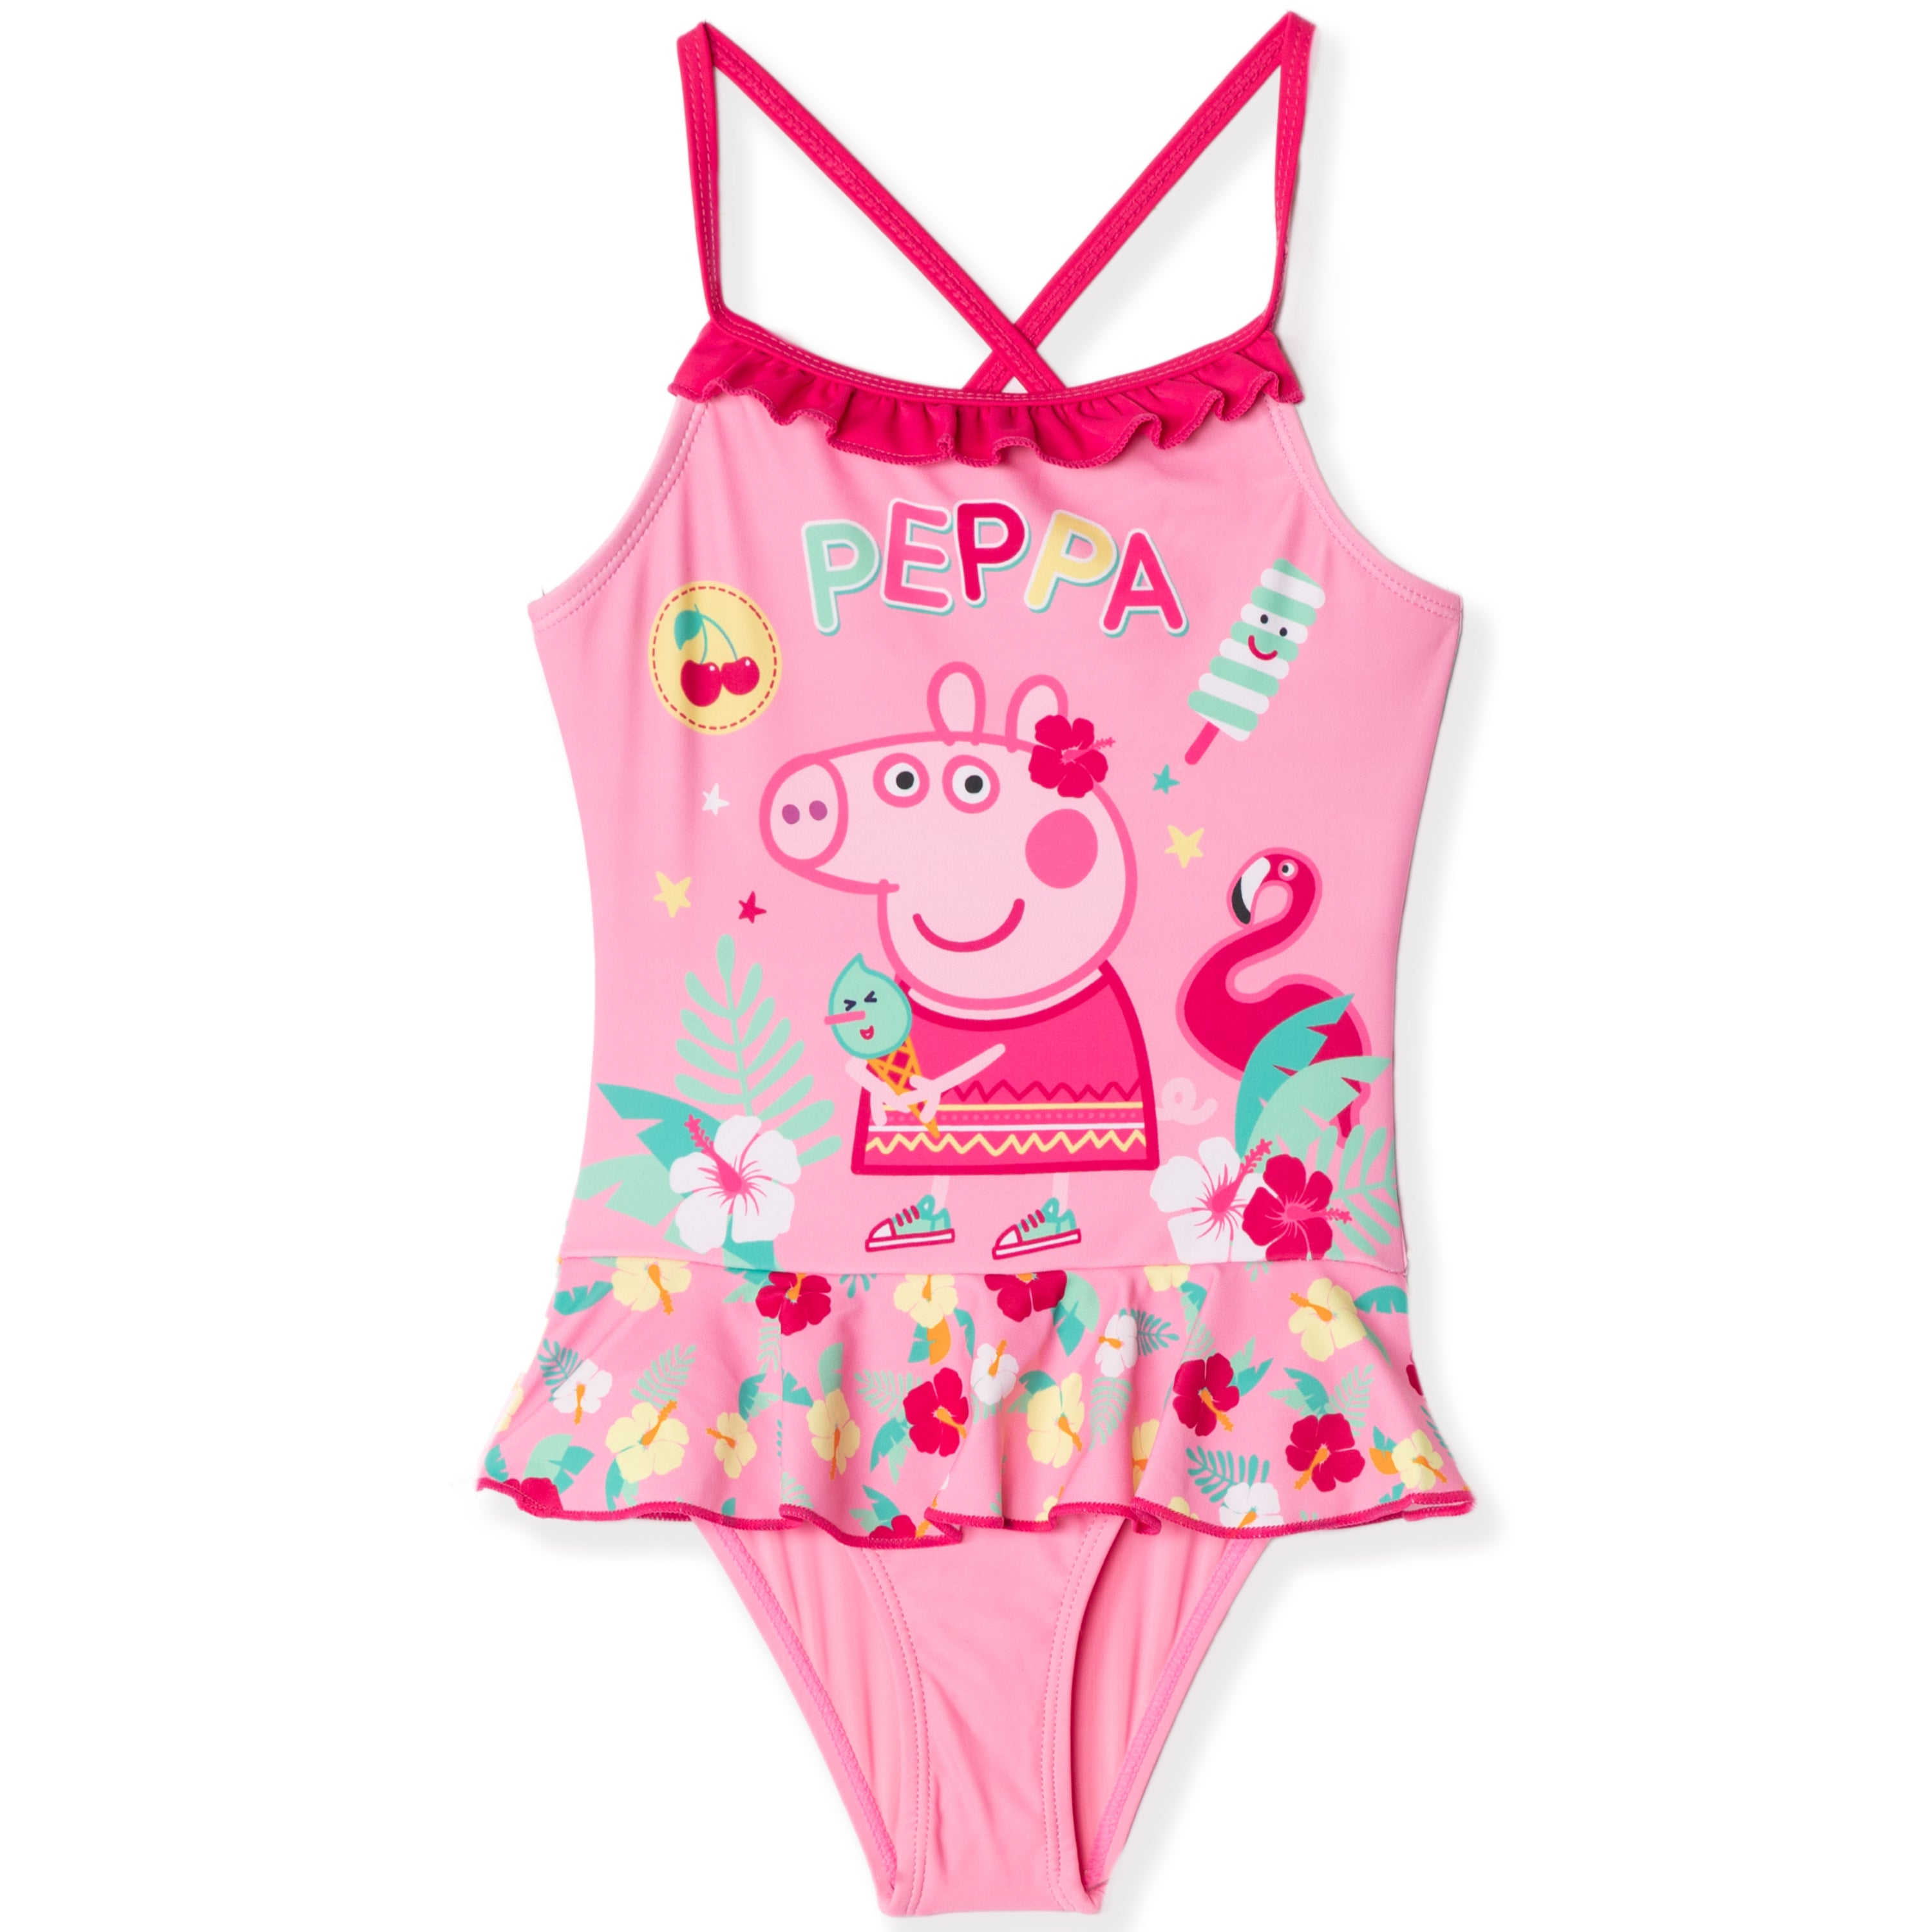 Peppa Pig 2 Pieces Summer Bathing Suit for Baby//Toddler Girls 85/% Polyester-15/% Elasthane